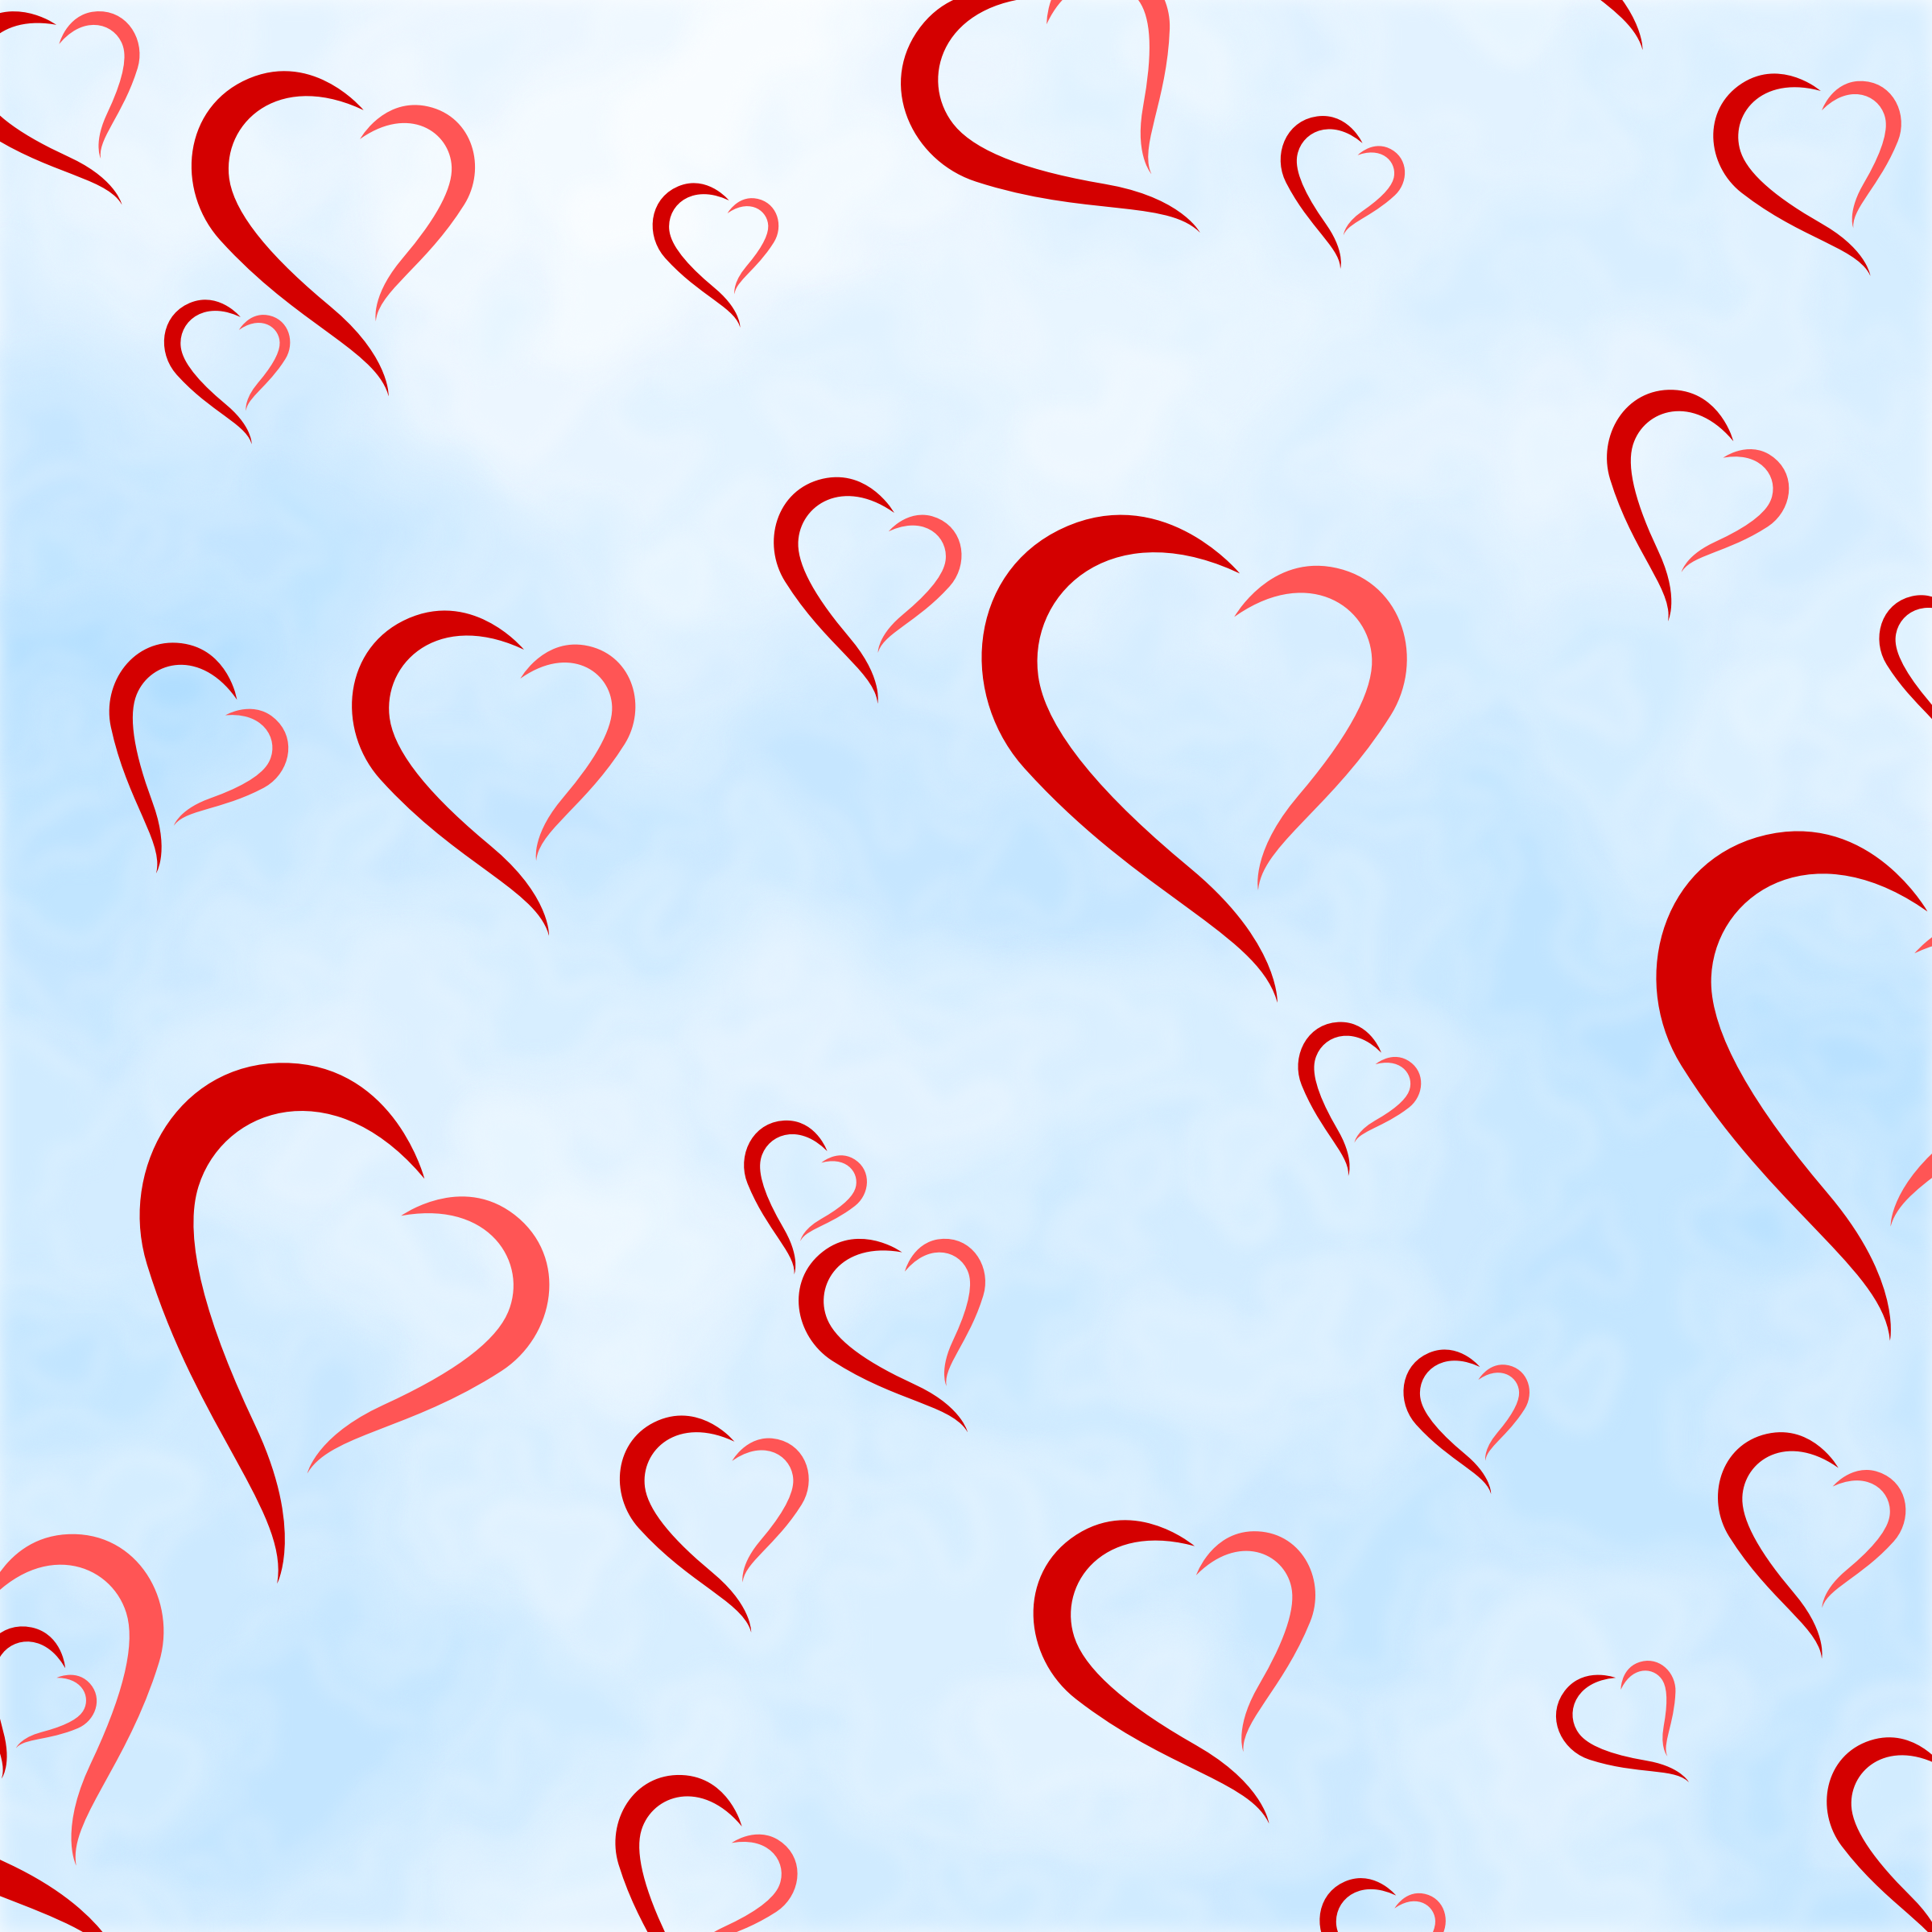 Hearts background by Firkin